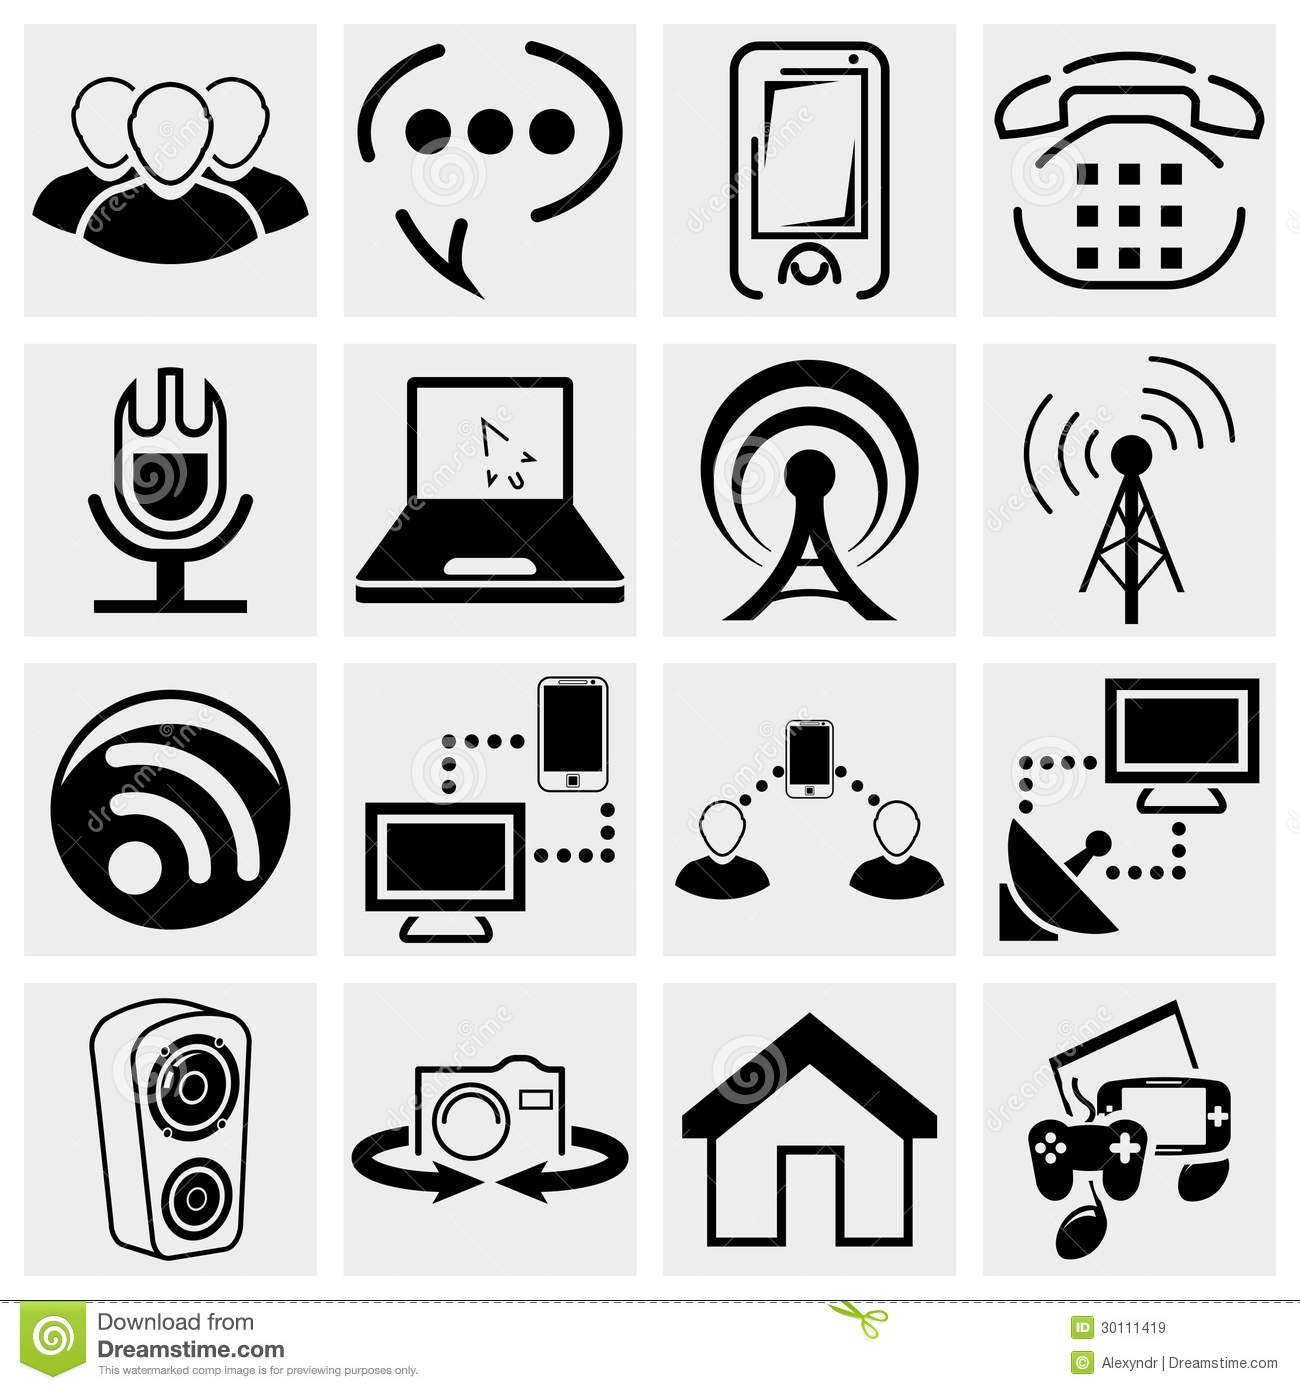 Royalty Free Stock Images Collection Media  munication Vector Icon Set Isolated Grey Background Eps File Available Image30111419 on tower radio network